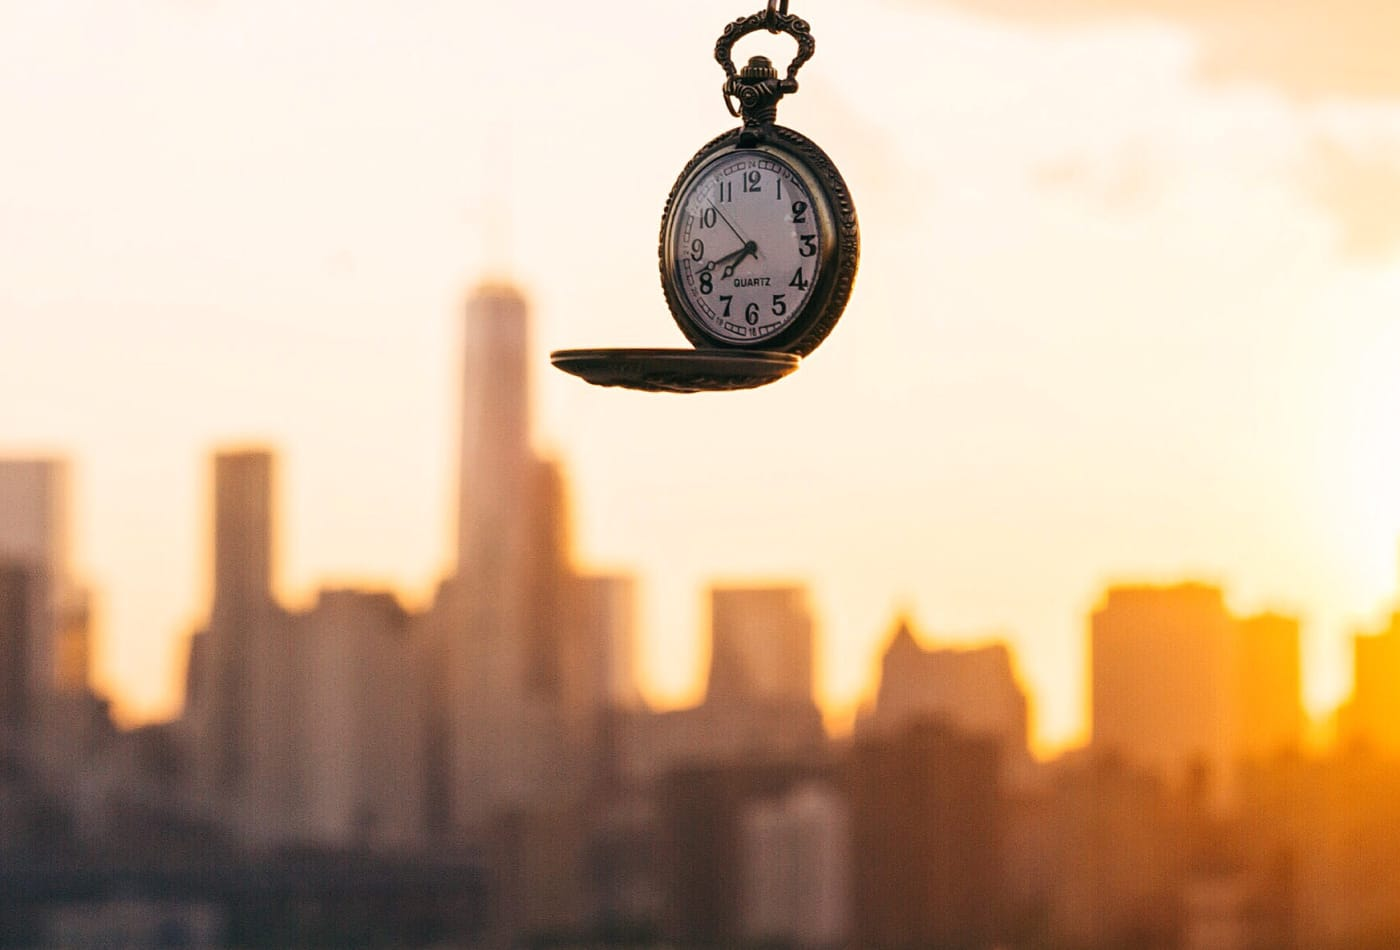 Here's when and why daylight saving time started in the US